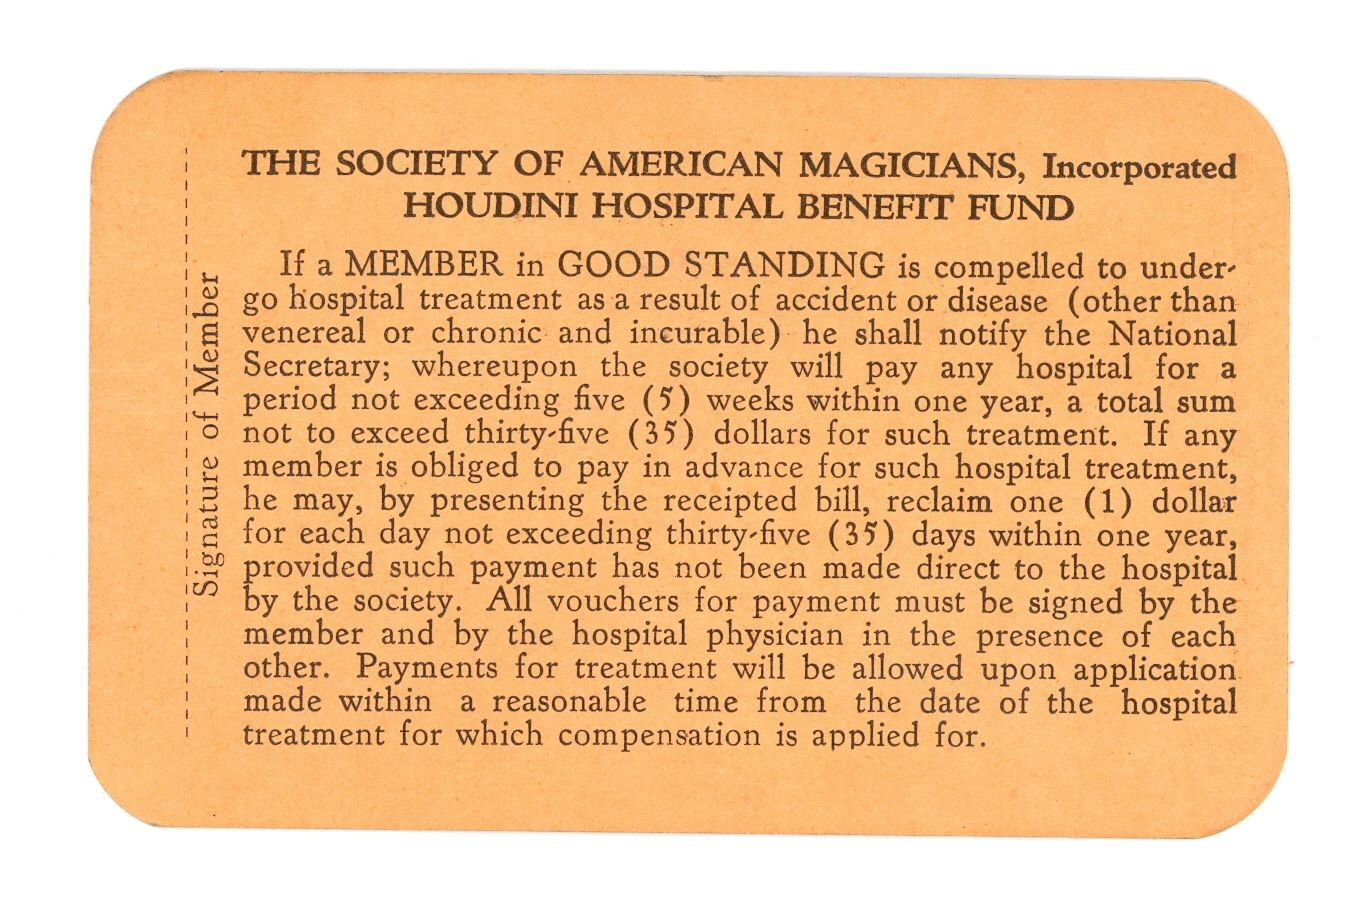 Back of a membership card for the Society of American Magicians, founded by Hardeen